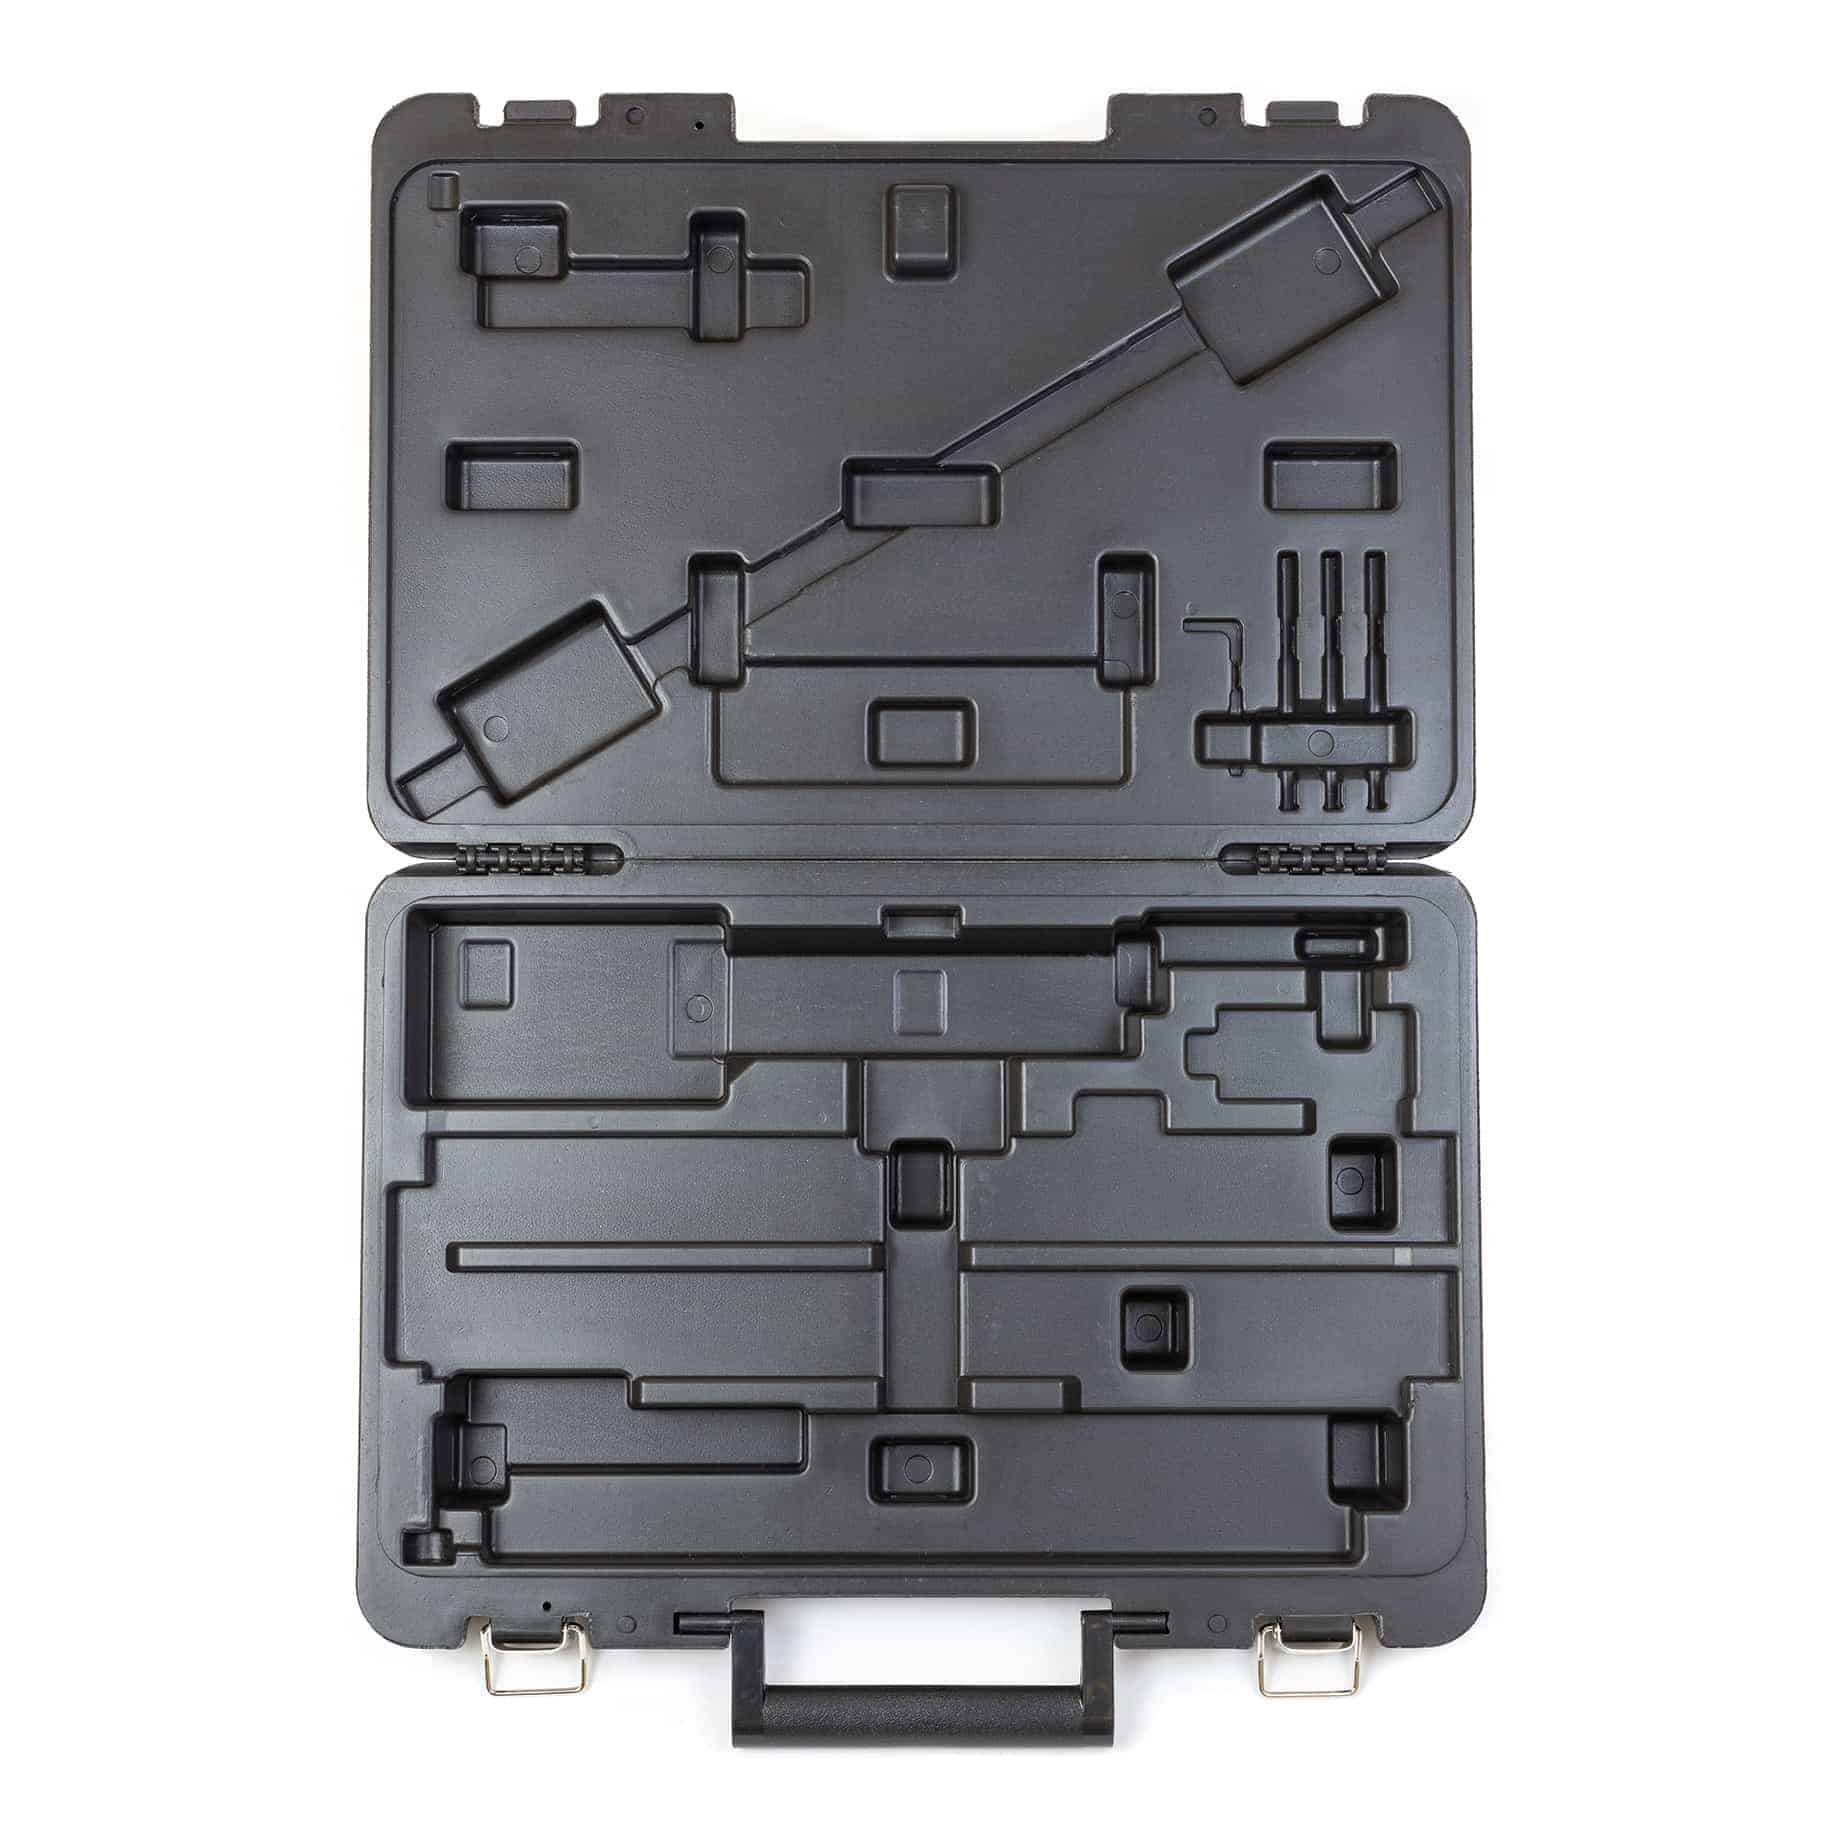 TP-CASECHJ Cabinet Hardware Jig Blow Molded Carrying Case (interior)